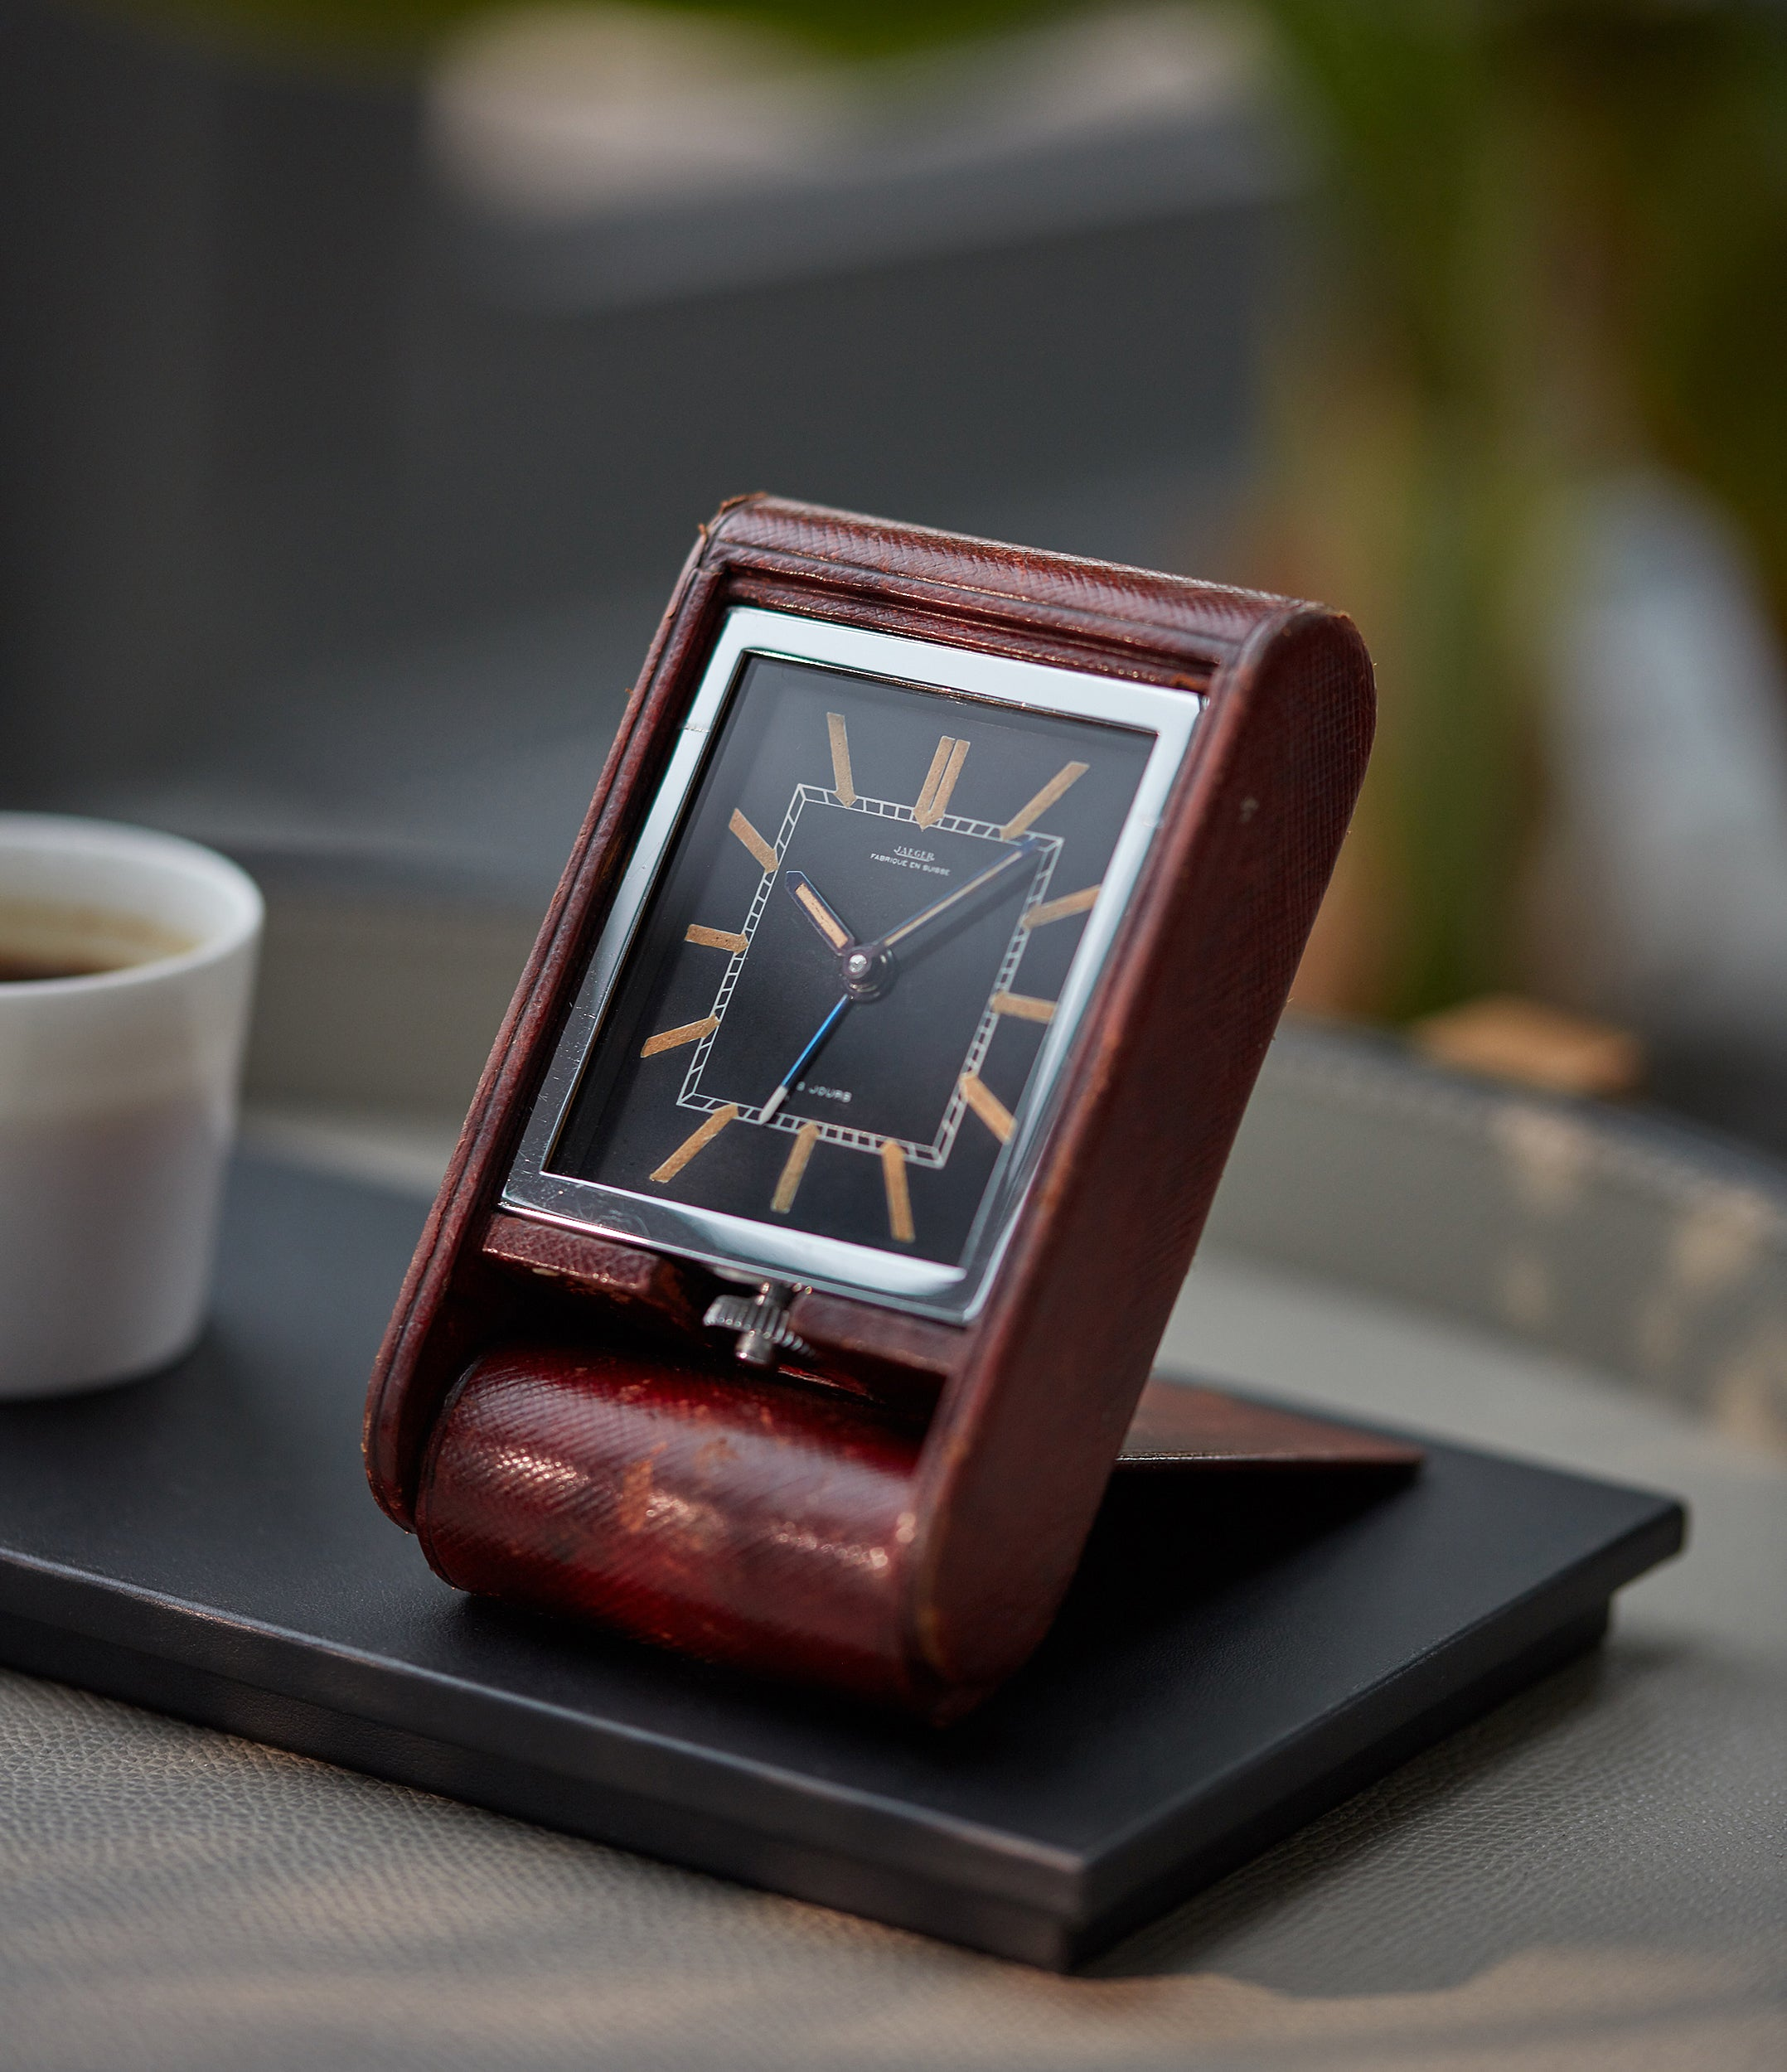 shop Jaeger-LeCoultre travel alarm clock with black dial and brown case at A Collected Man London